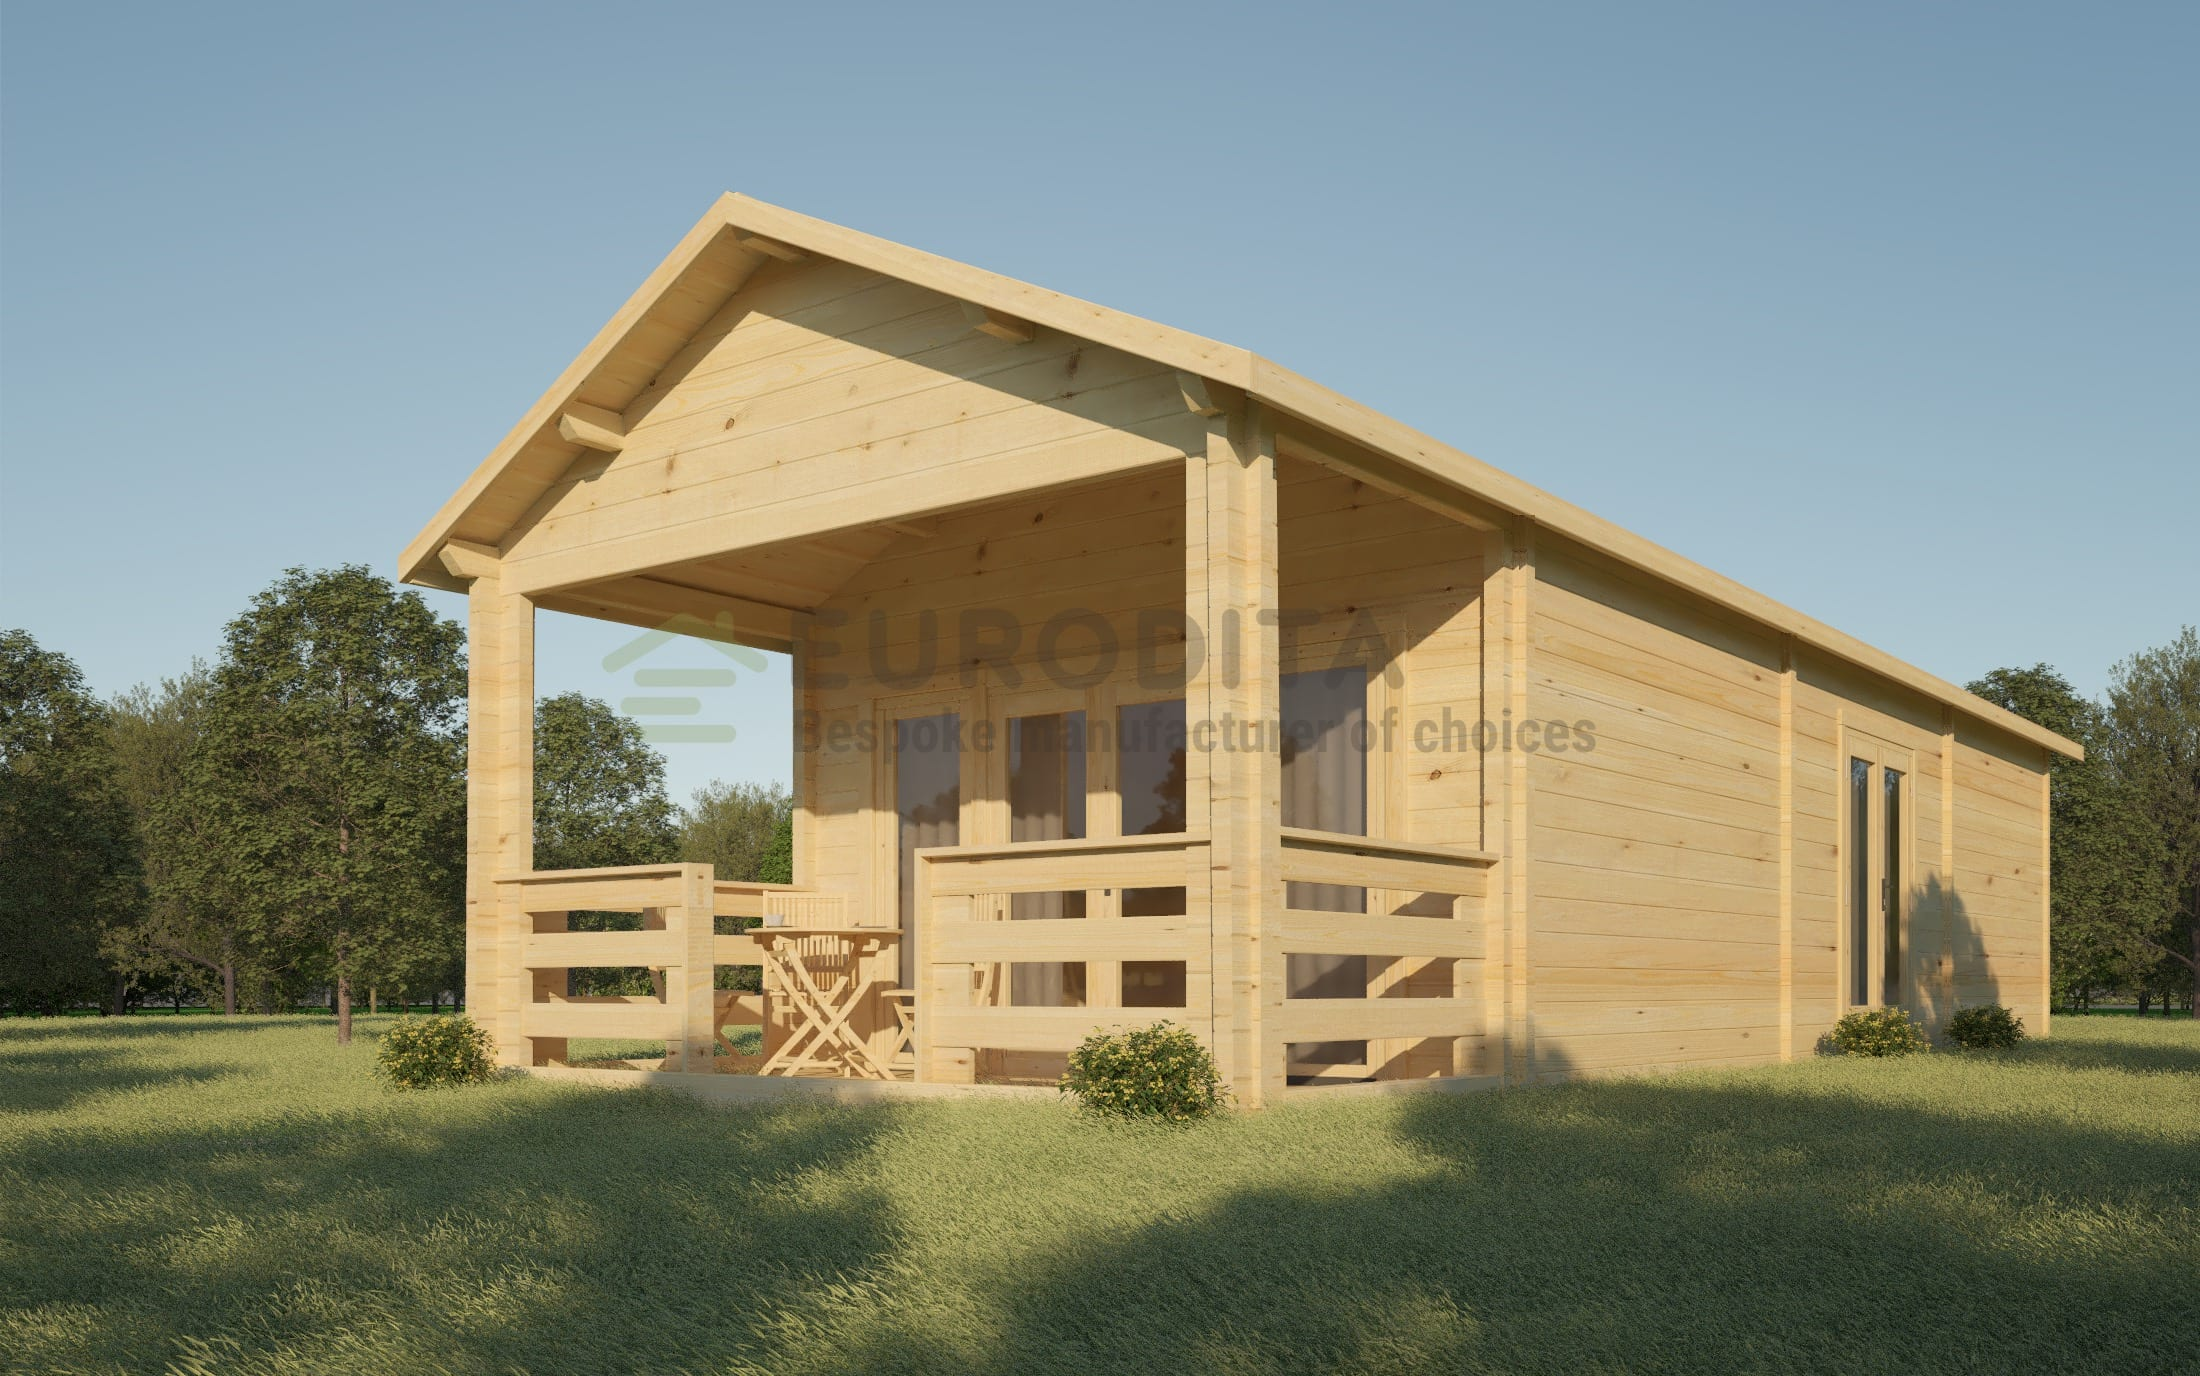 Bespoke log cabins from Eurodita